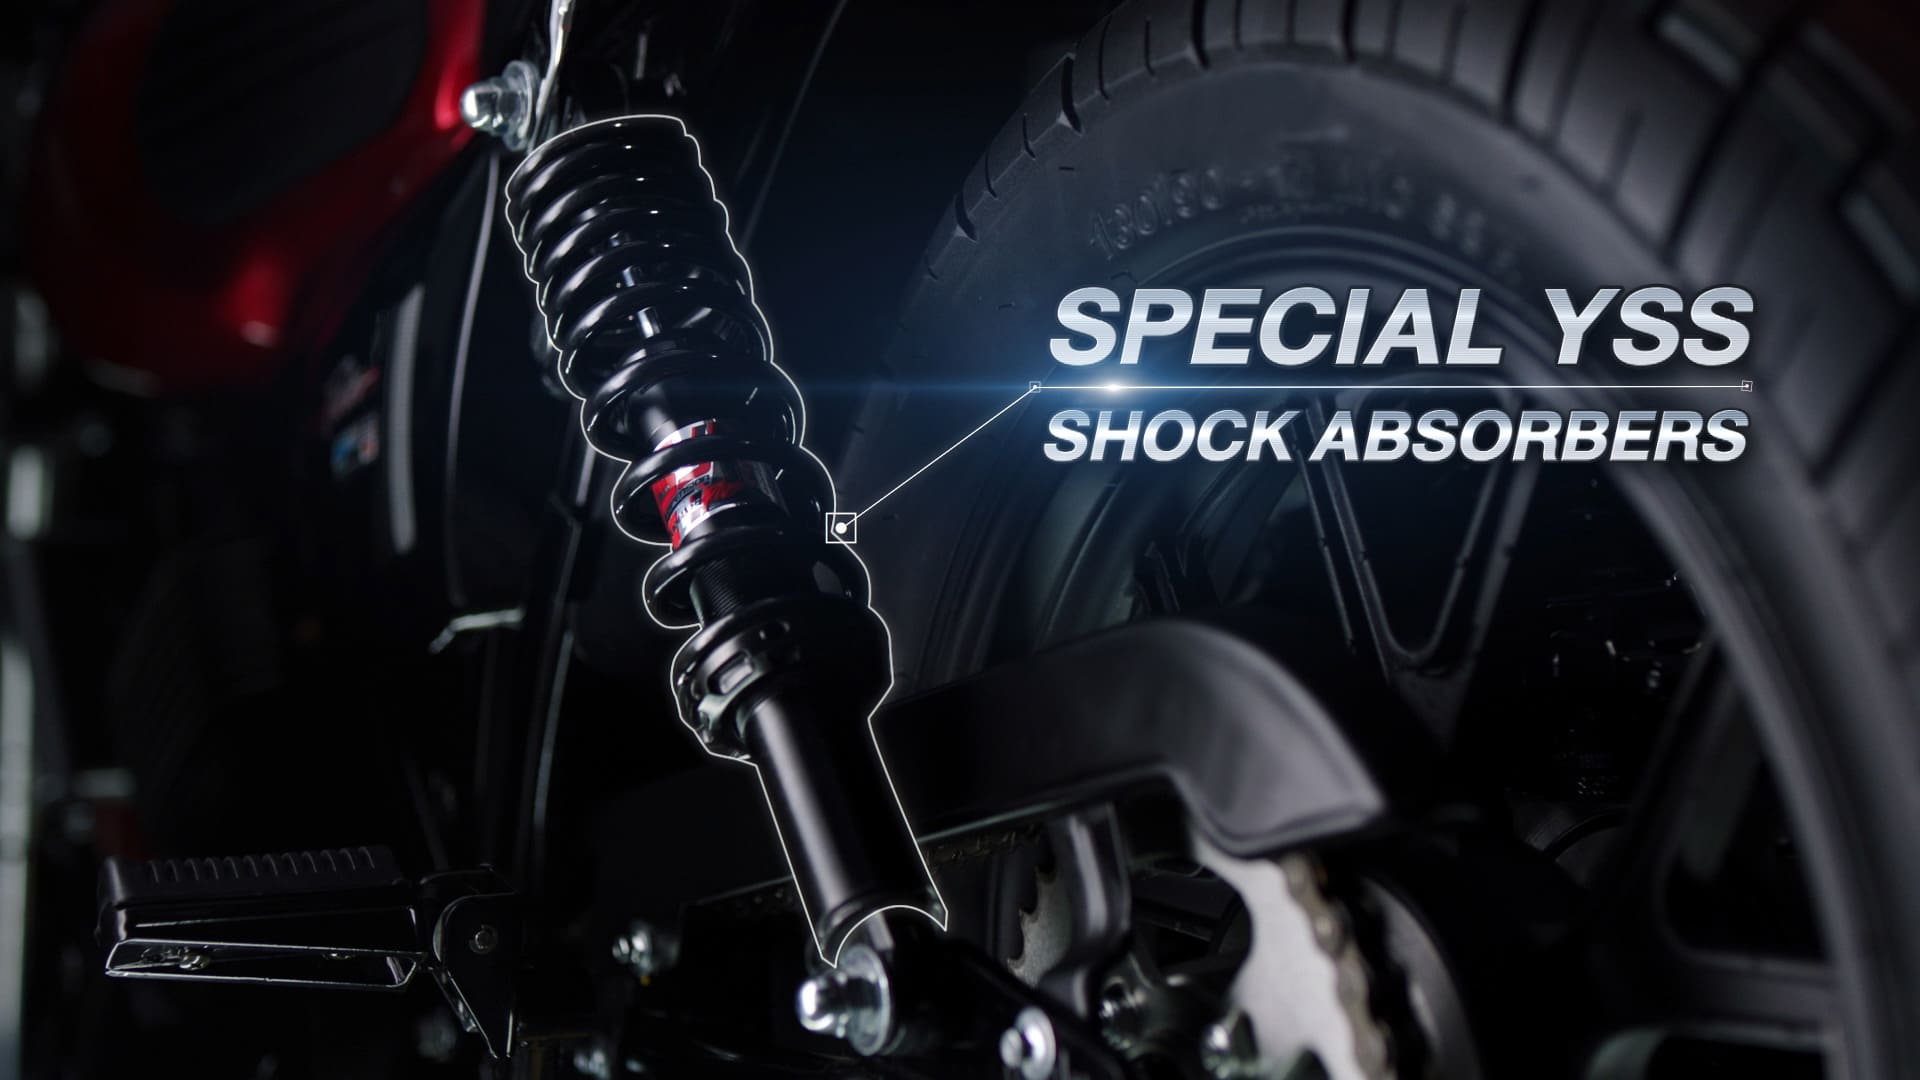 Special Yss Shock absorbers